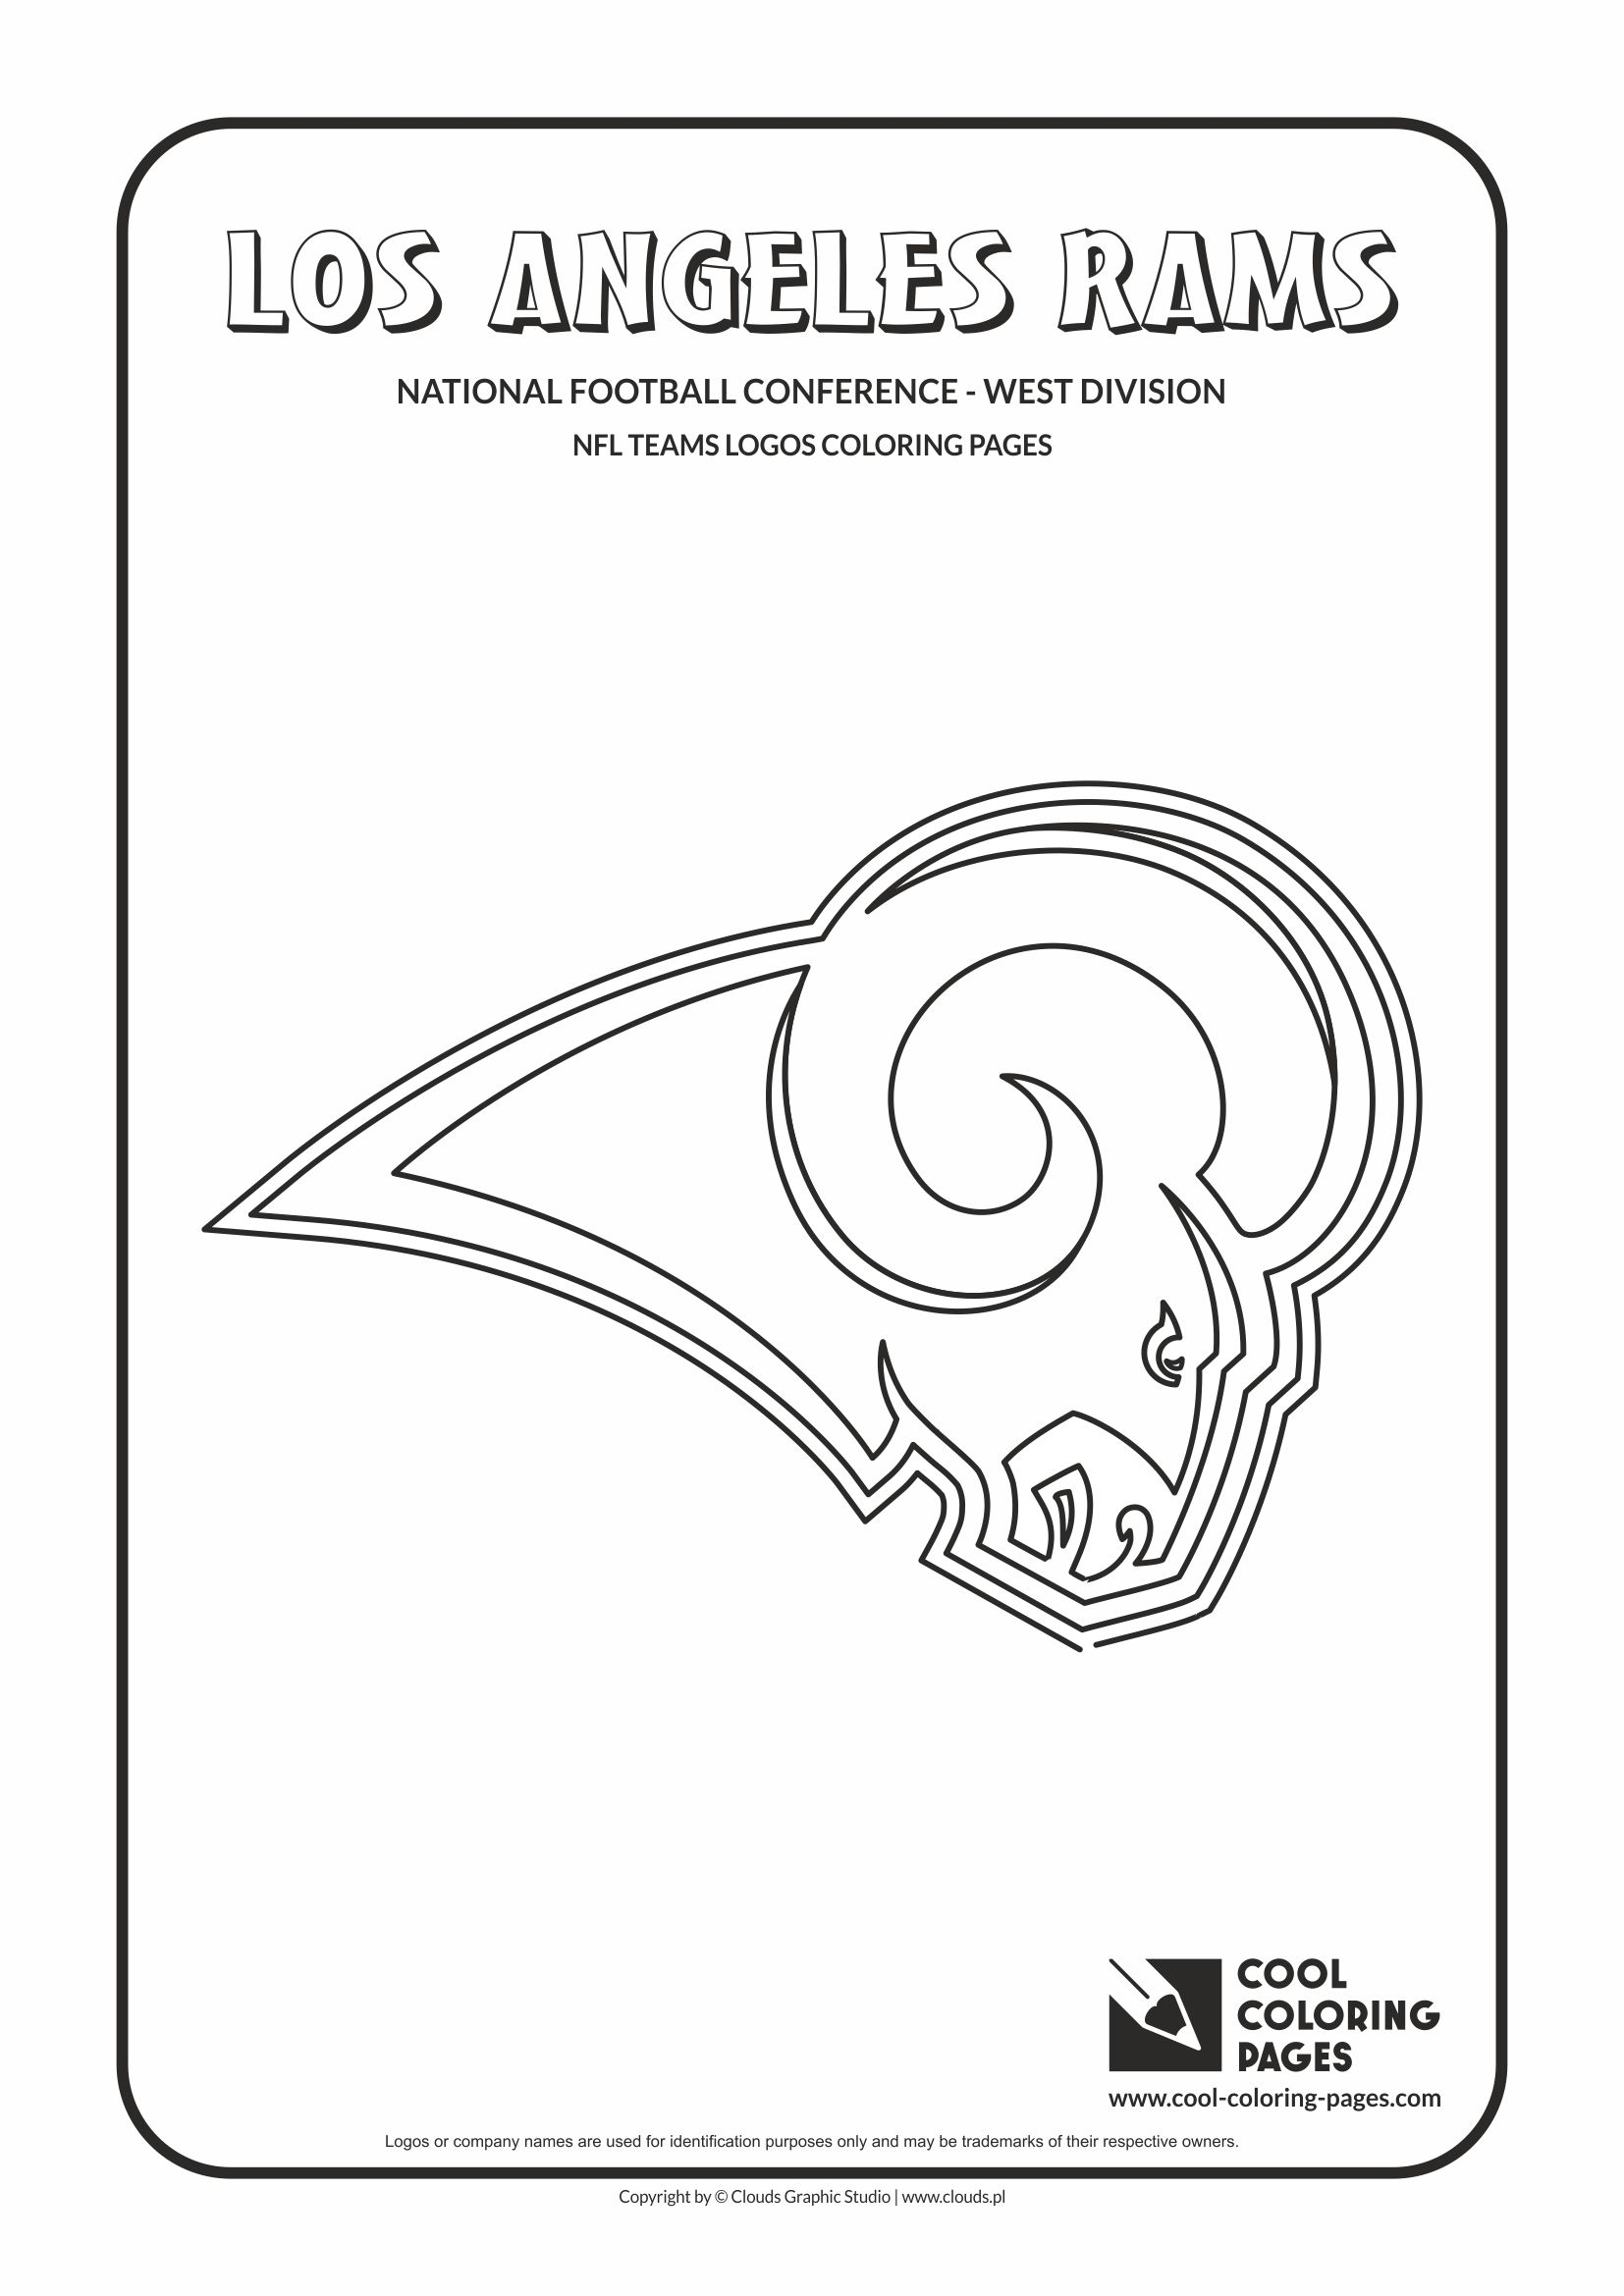 Los Angeles Rams Nfl American Football Teams Logos St Louis Rams Coloring Pages